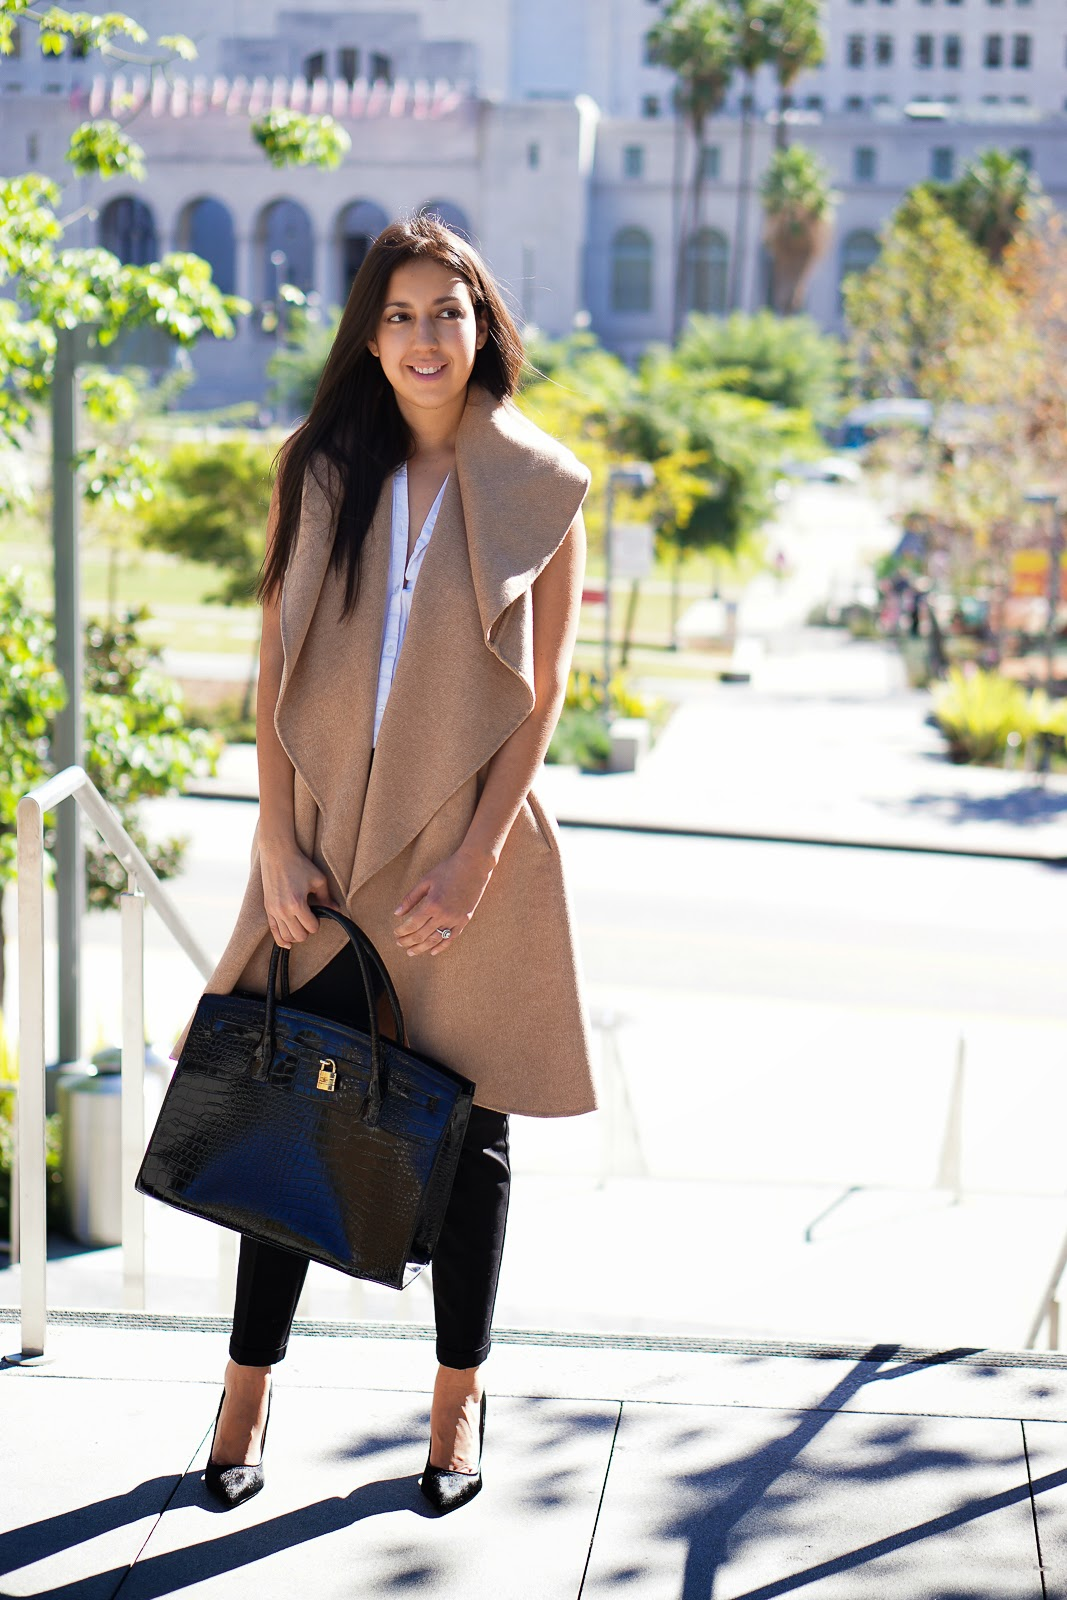 Lookbook, Zara Camel Vest, Camel Vest, Zara Vest, Shoemint Heels, Black Heels, Black Pumps, Aldo Bag, Zara Hand Made Long Waistcoat, Zara Camel Waist Coat, How to Style a Camel Vest,